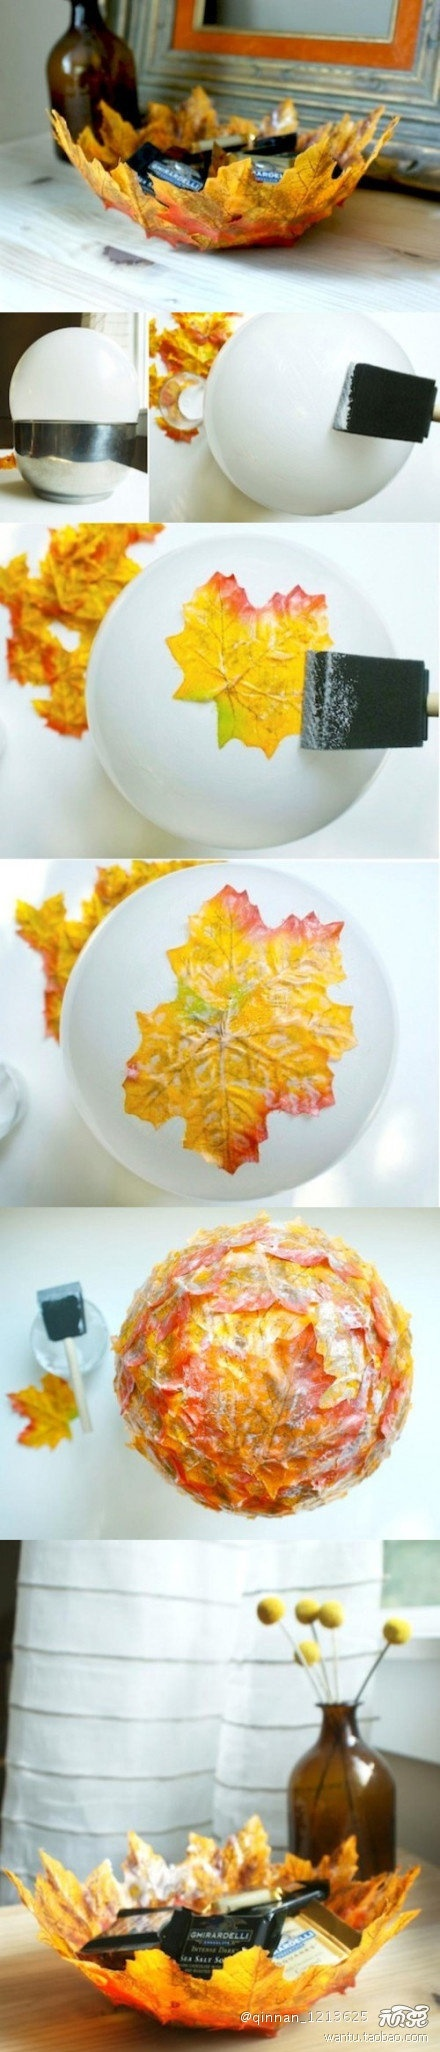 To make a leaf bowl, here is what you will need:  Several dozen palm-sized leaves. They should still be pliable and not dry. If you wish you may use artificial fall leaves.  Mod Podge.  Paintbrush Plastic Wrap Cooking Spray Paint Brush Medium sized bowl Once you have your supplies organized, put the bowl together!